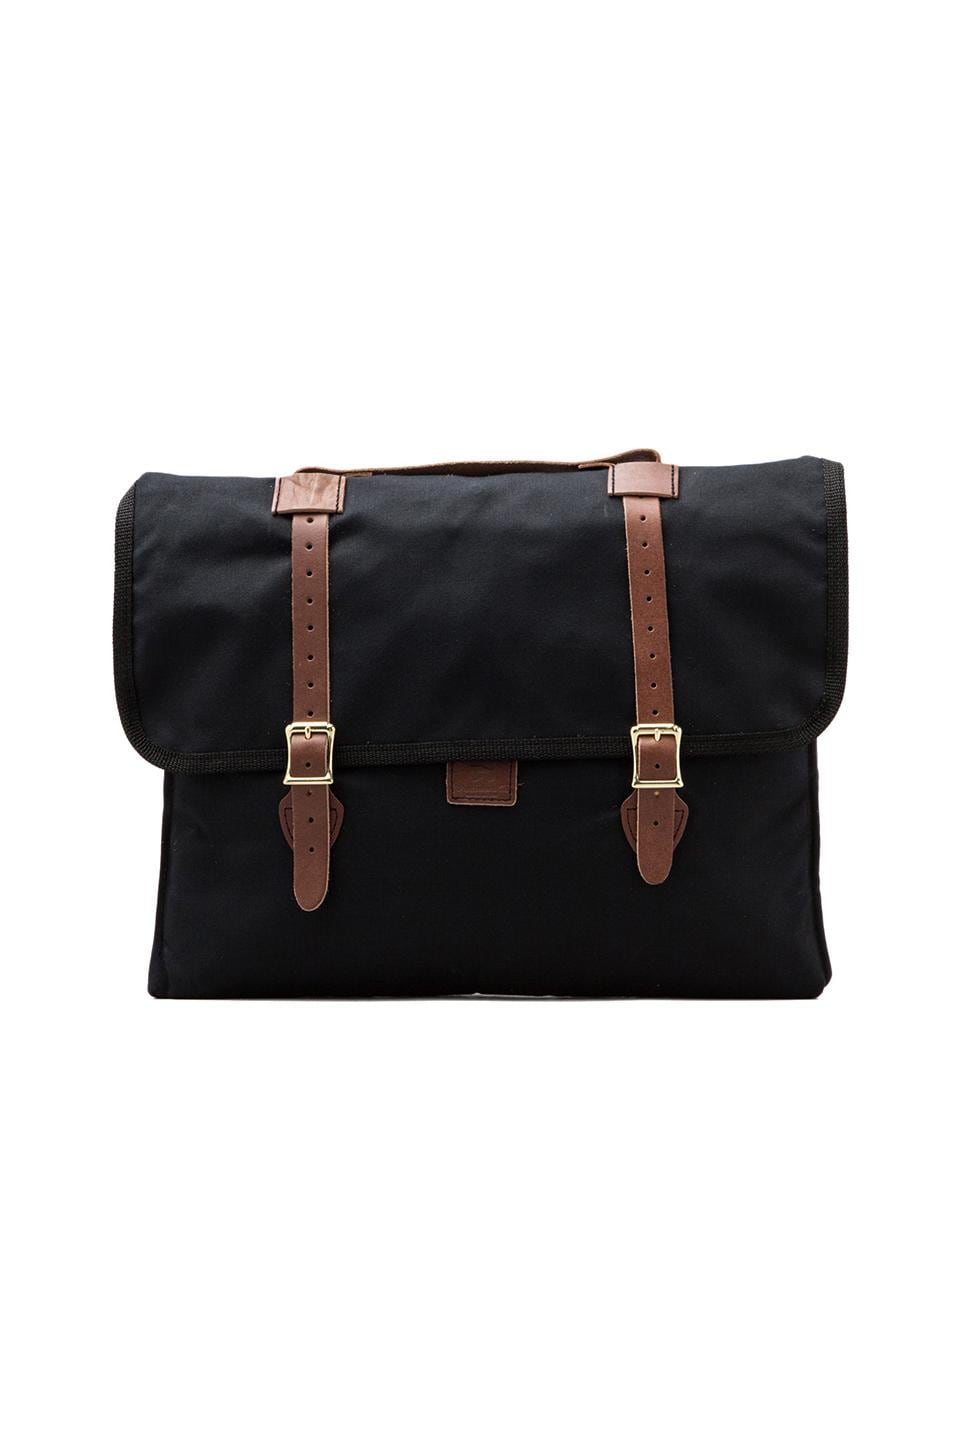 Wheelmen & Co. 15 inch E. Homes Laptop Case in Black